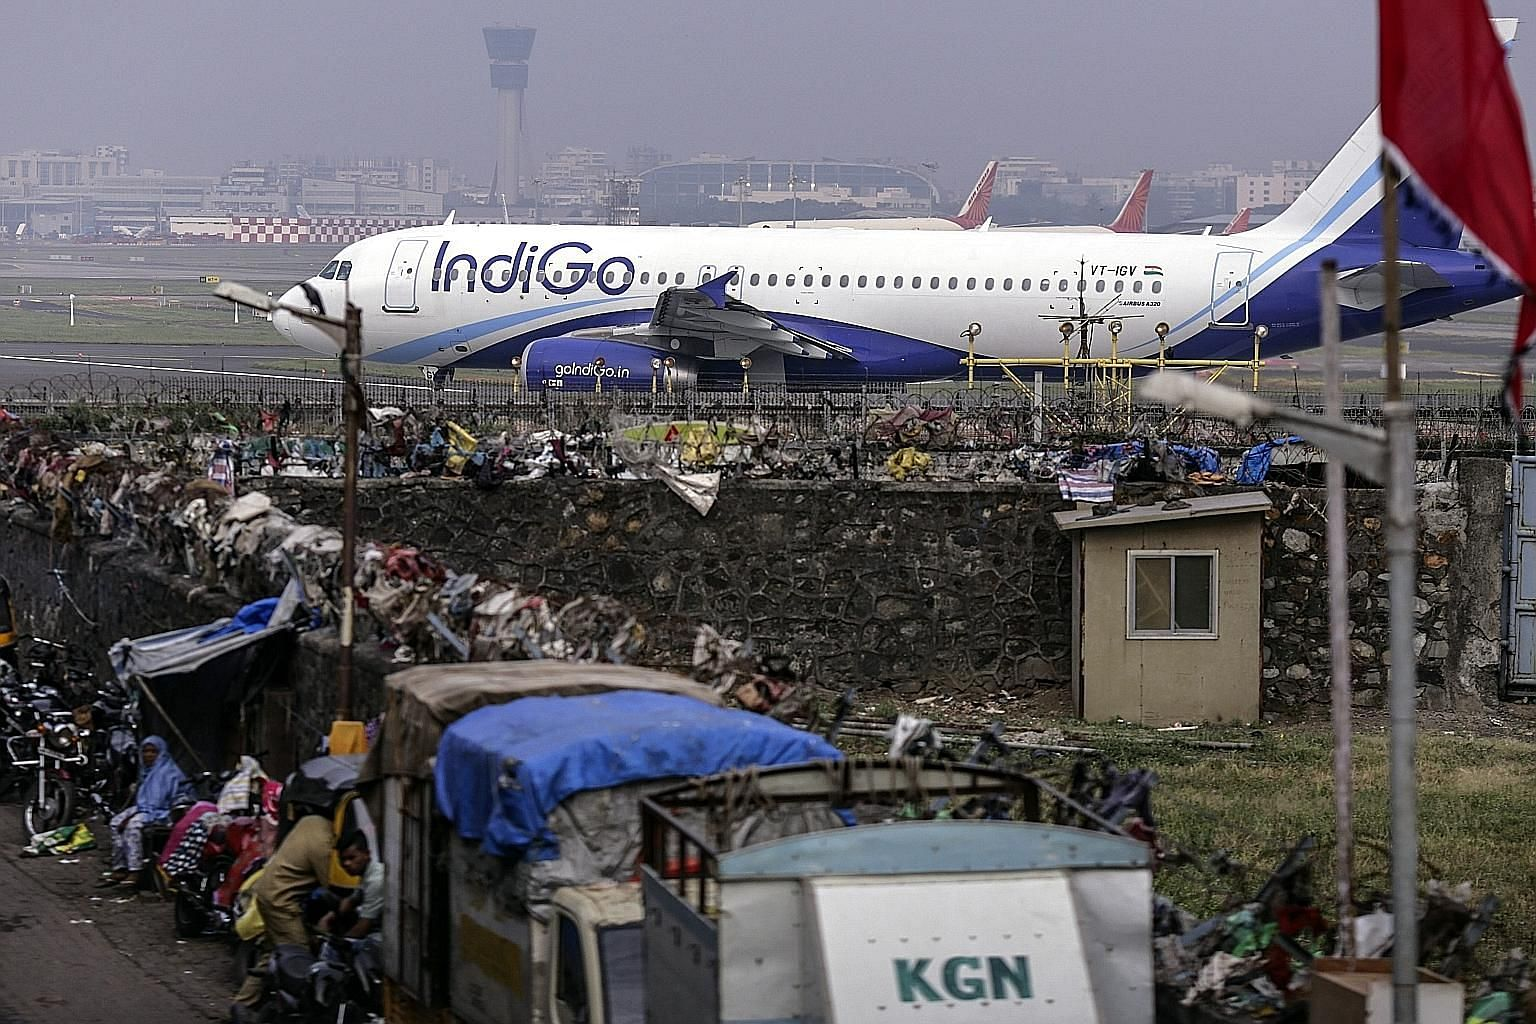 An IndiGo plane at Chhatrapati Shivaji International Airport in Mumbai yesterday. IndiGo's initial public offering will be India's biggest in almost three years. It is the only Indian airline to have made a profit in each of the past seven years.